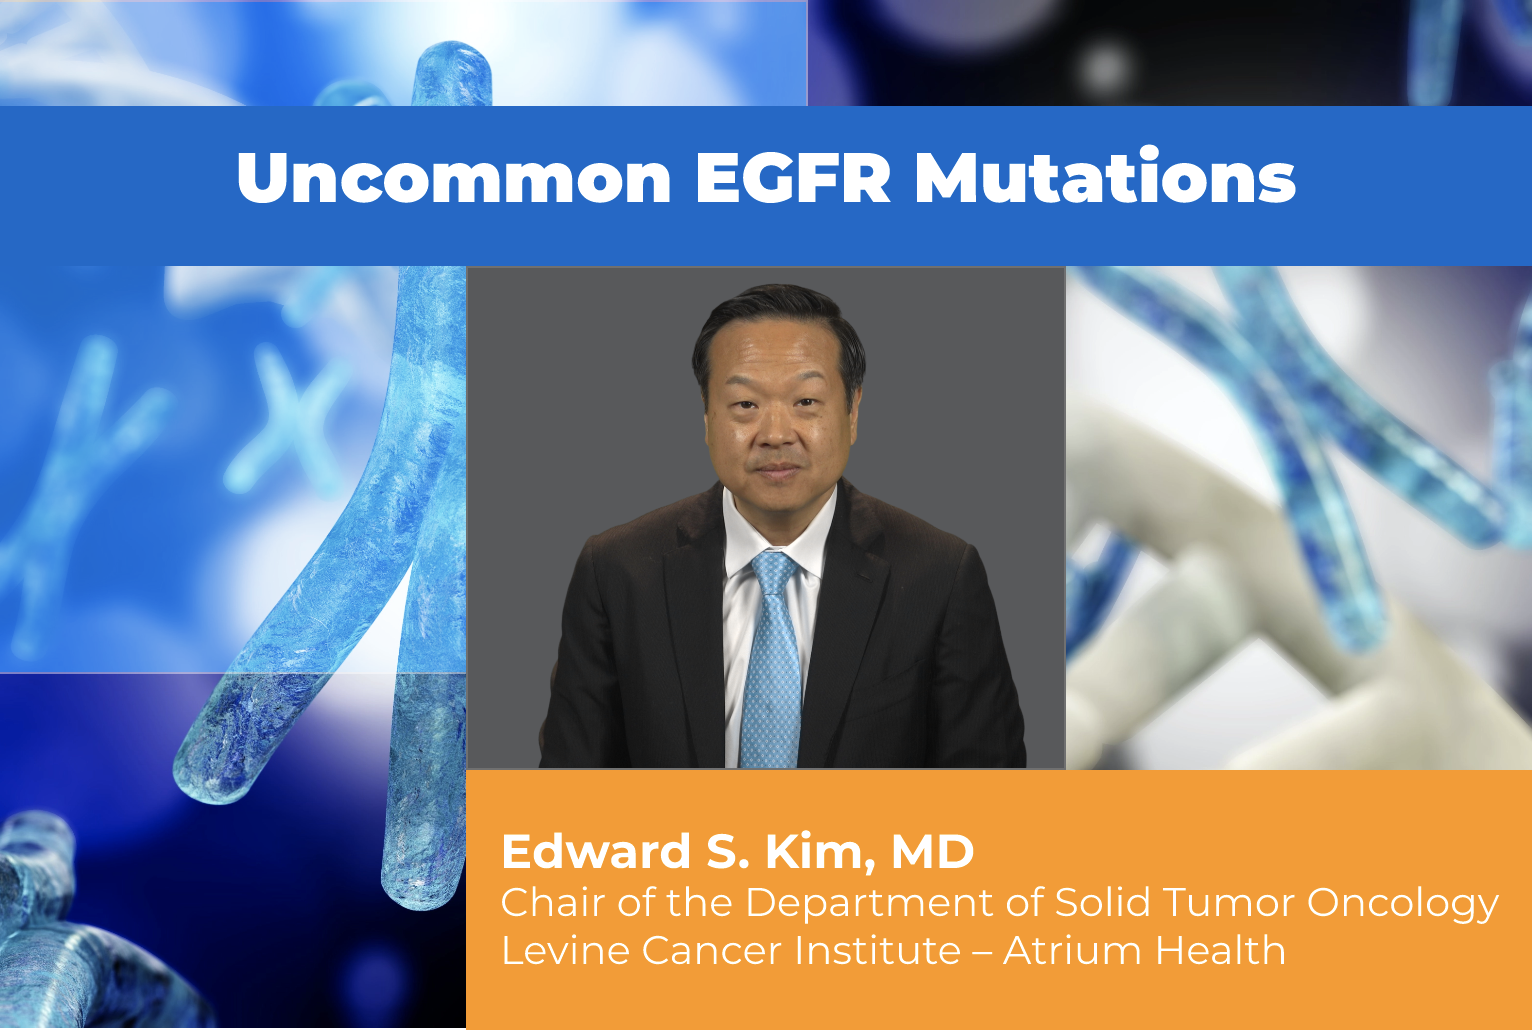 Uncommon EGFR Mutations